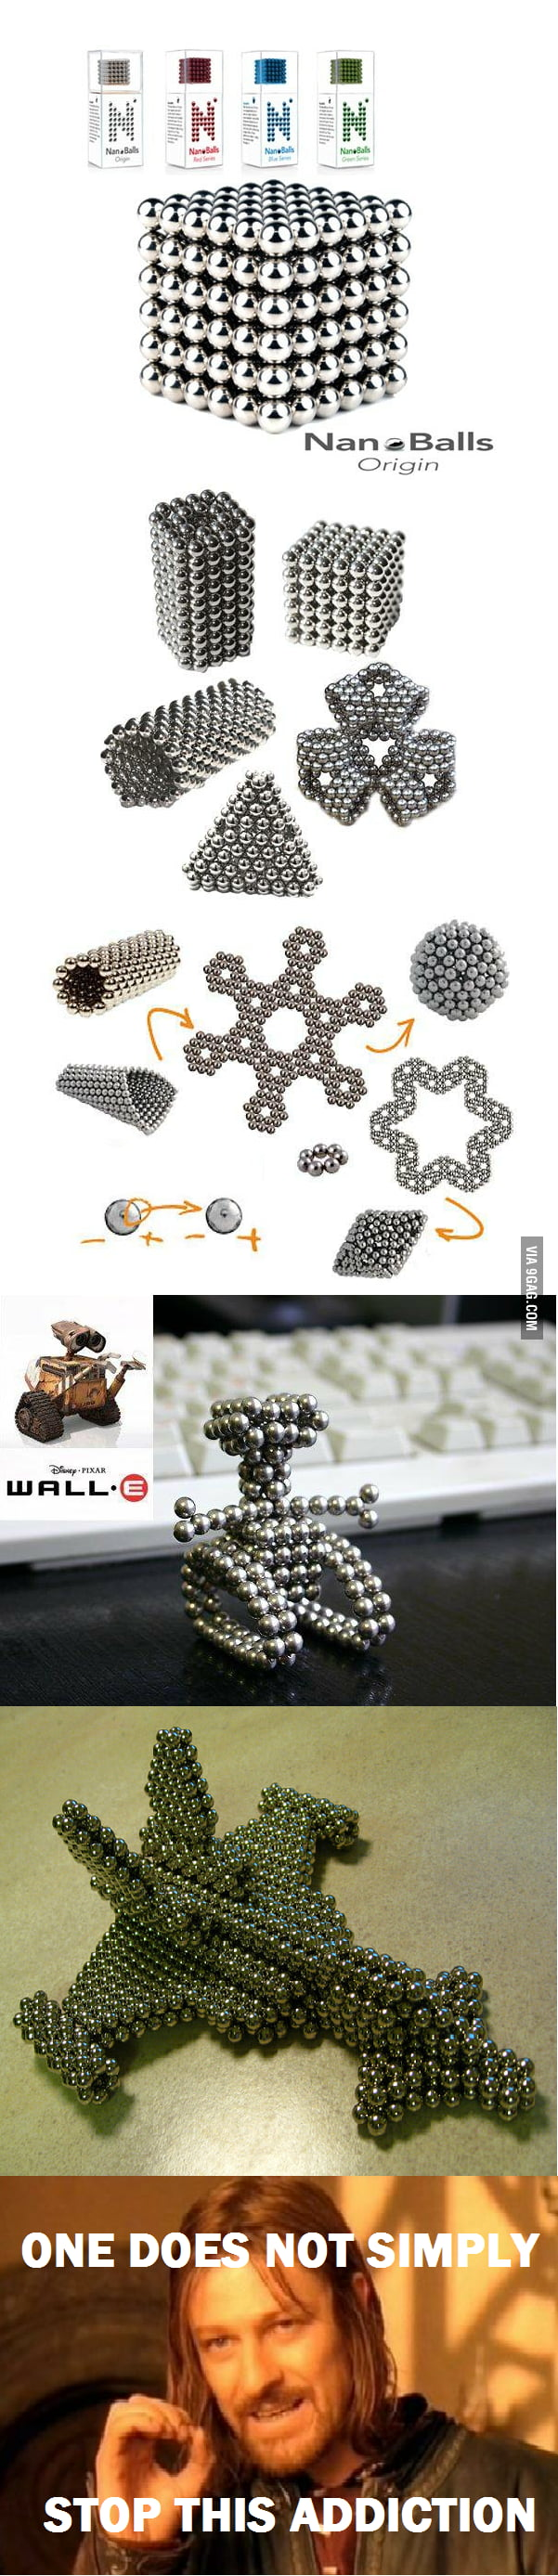 What can you make with Magnetic Balls?